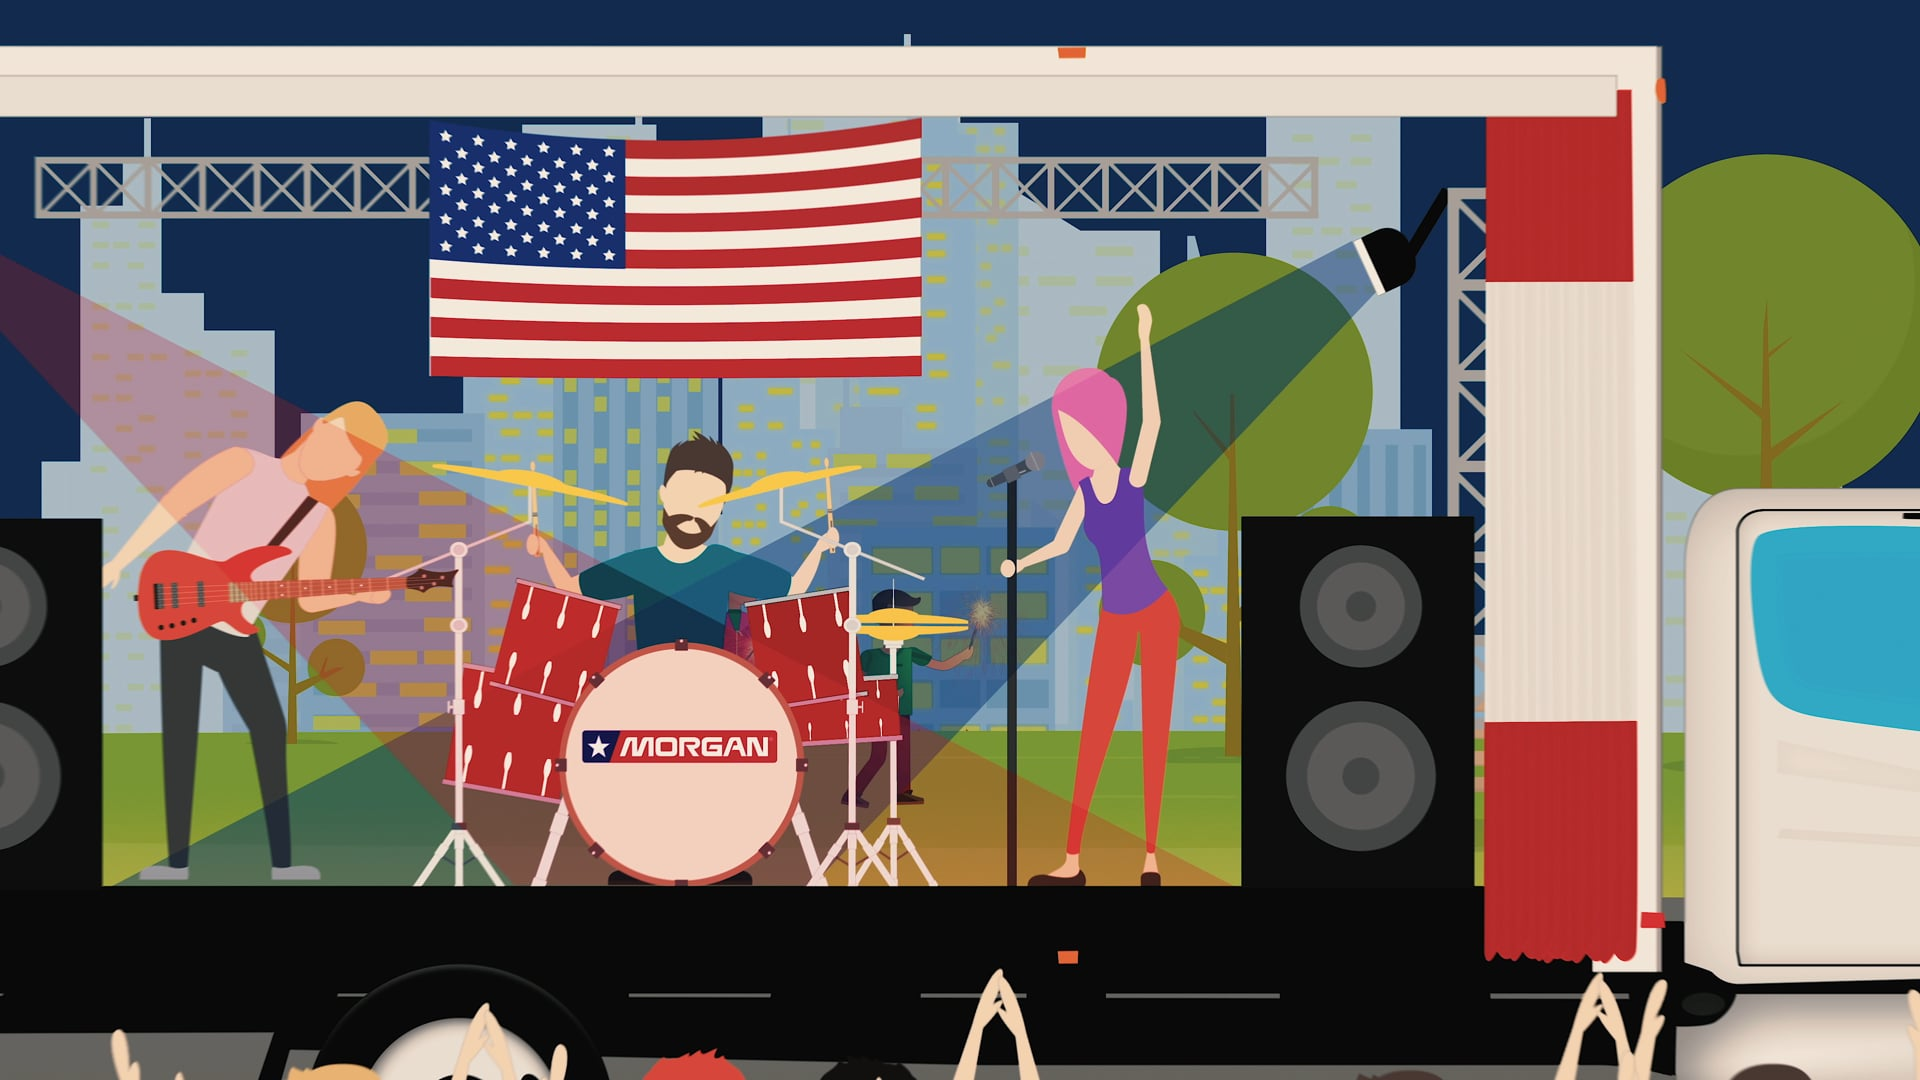 Motion-Graphics & Animation—Holiday 4th of July